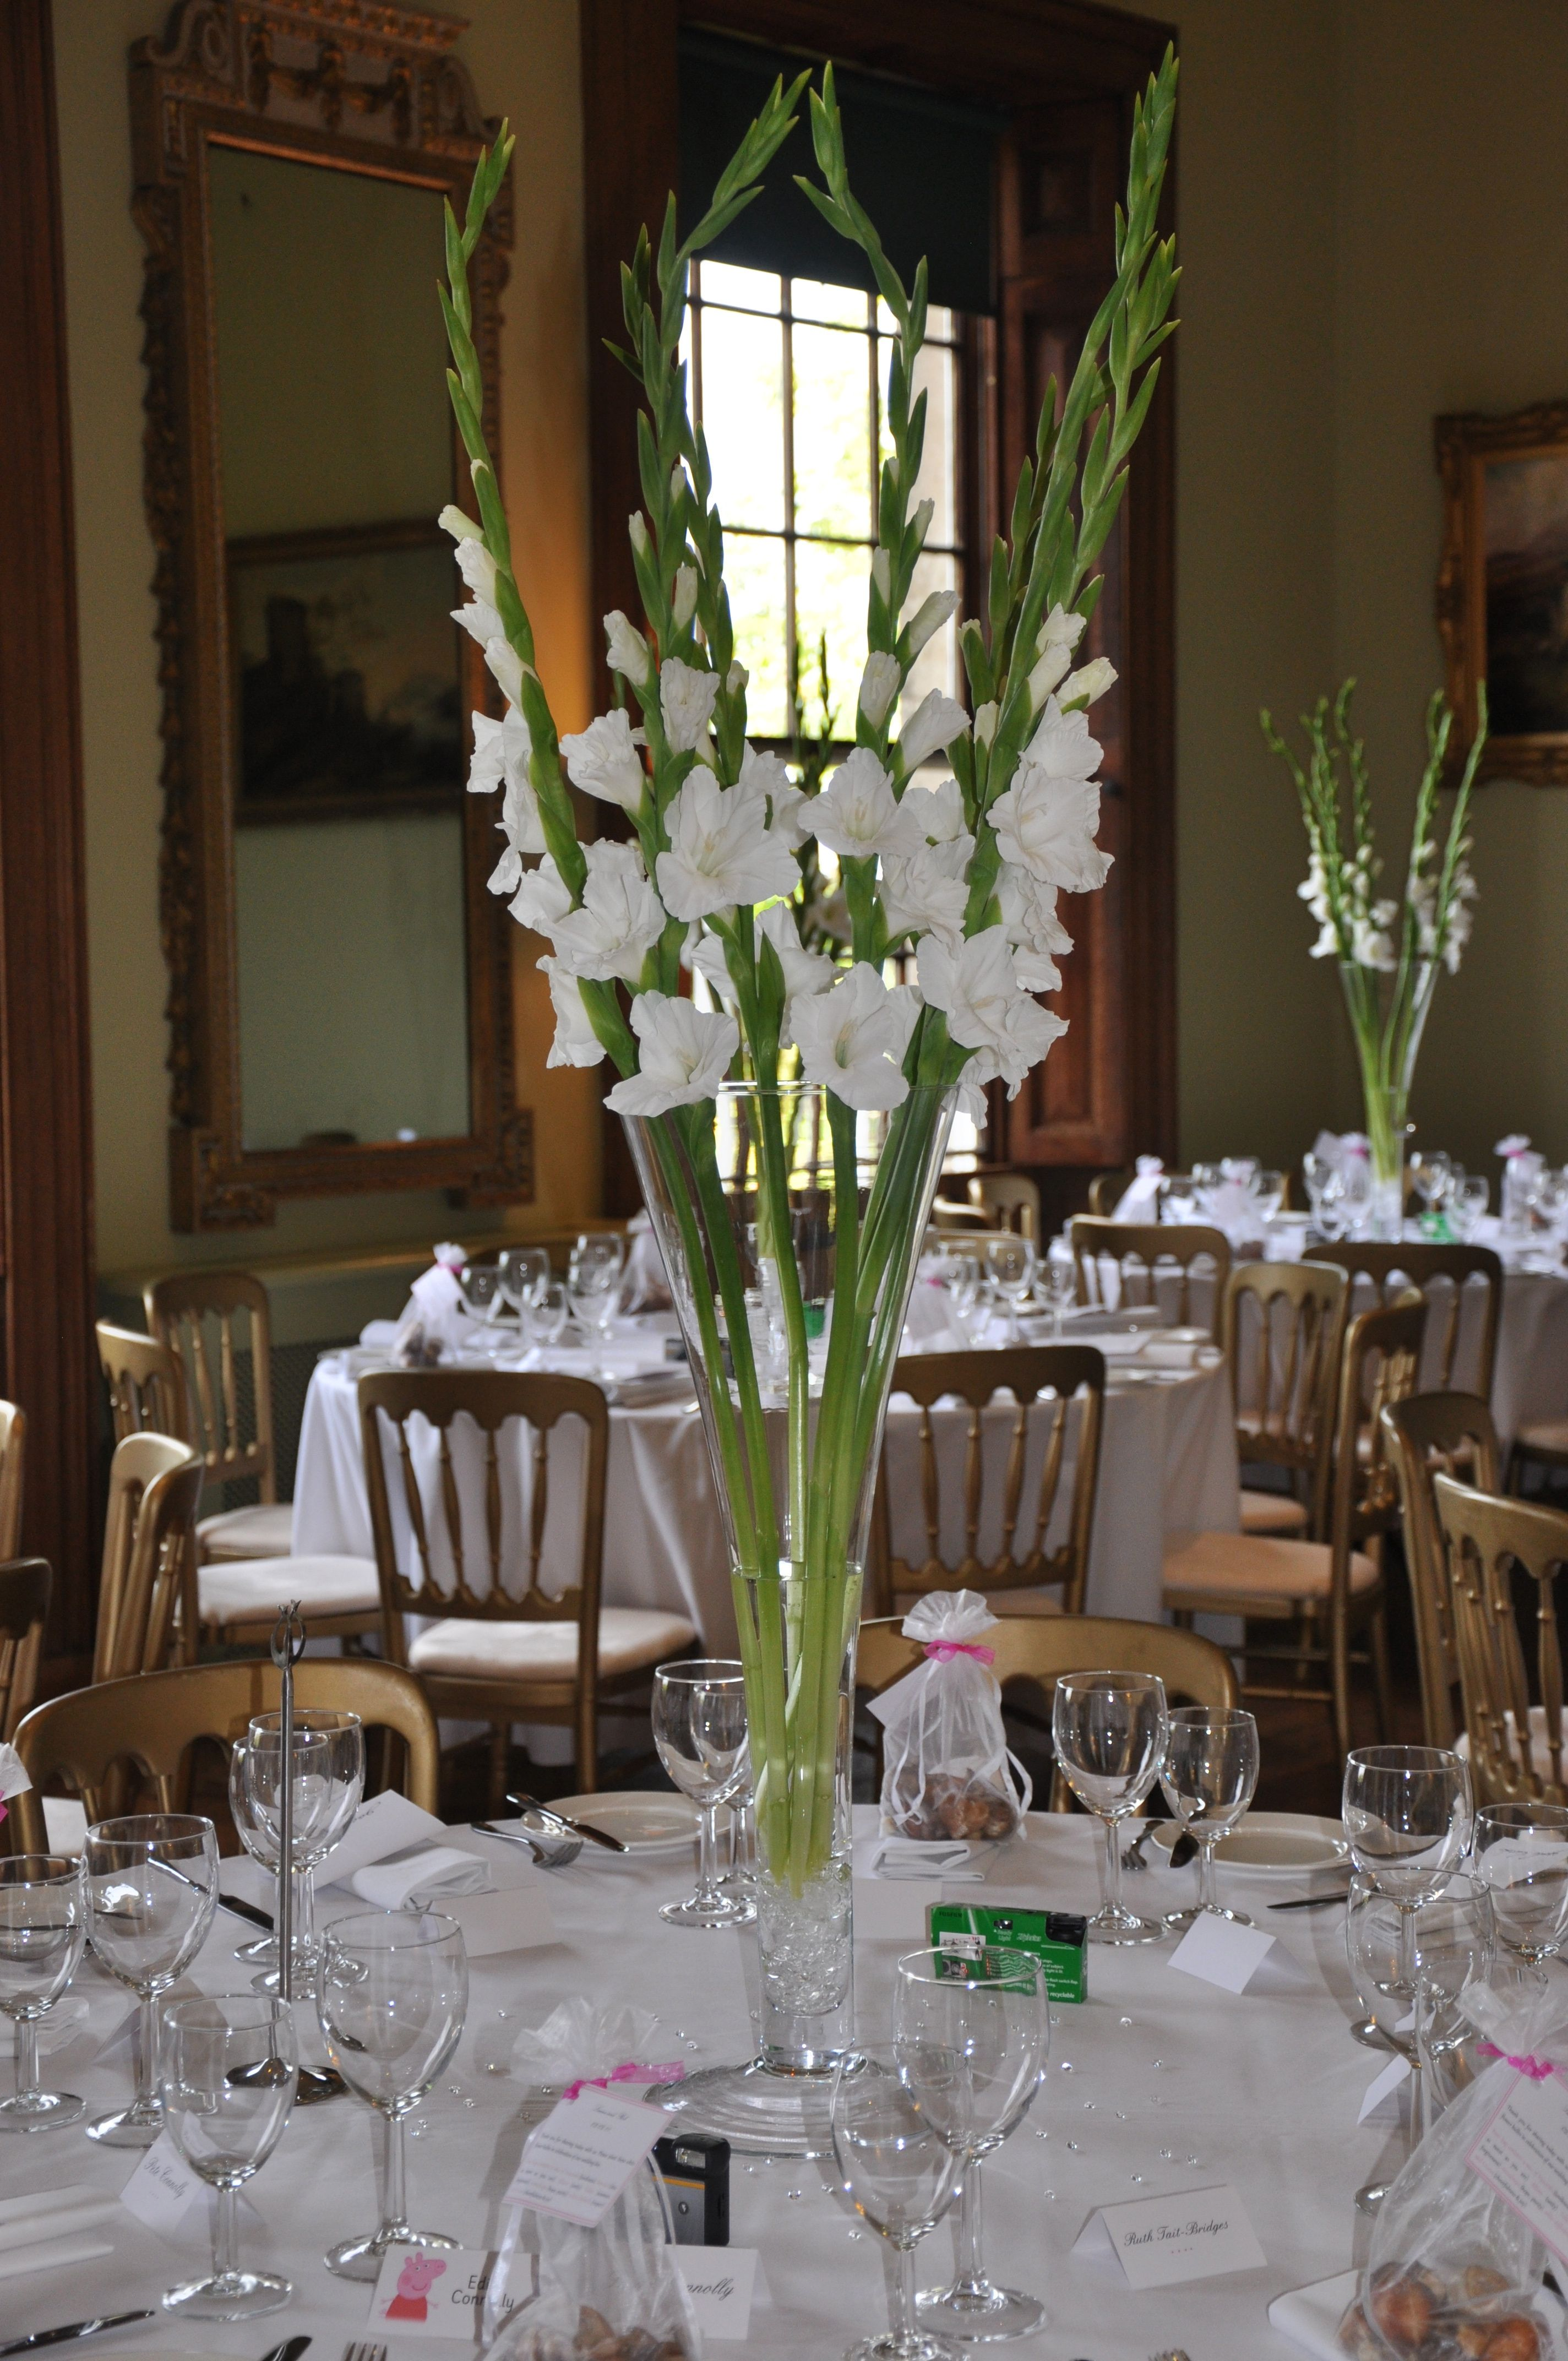 gladiolus in a white wedding by beautiful flowers 4u northampton pinteres. Black Bedroom Furniture Sets. Home Design Ideas